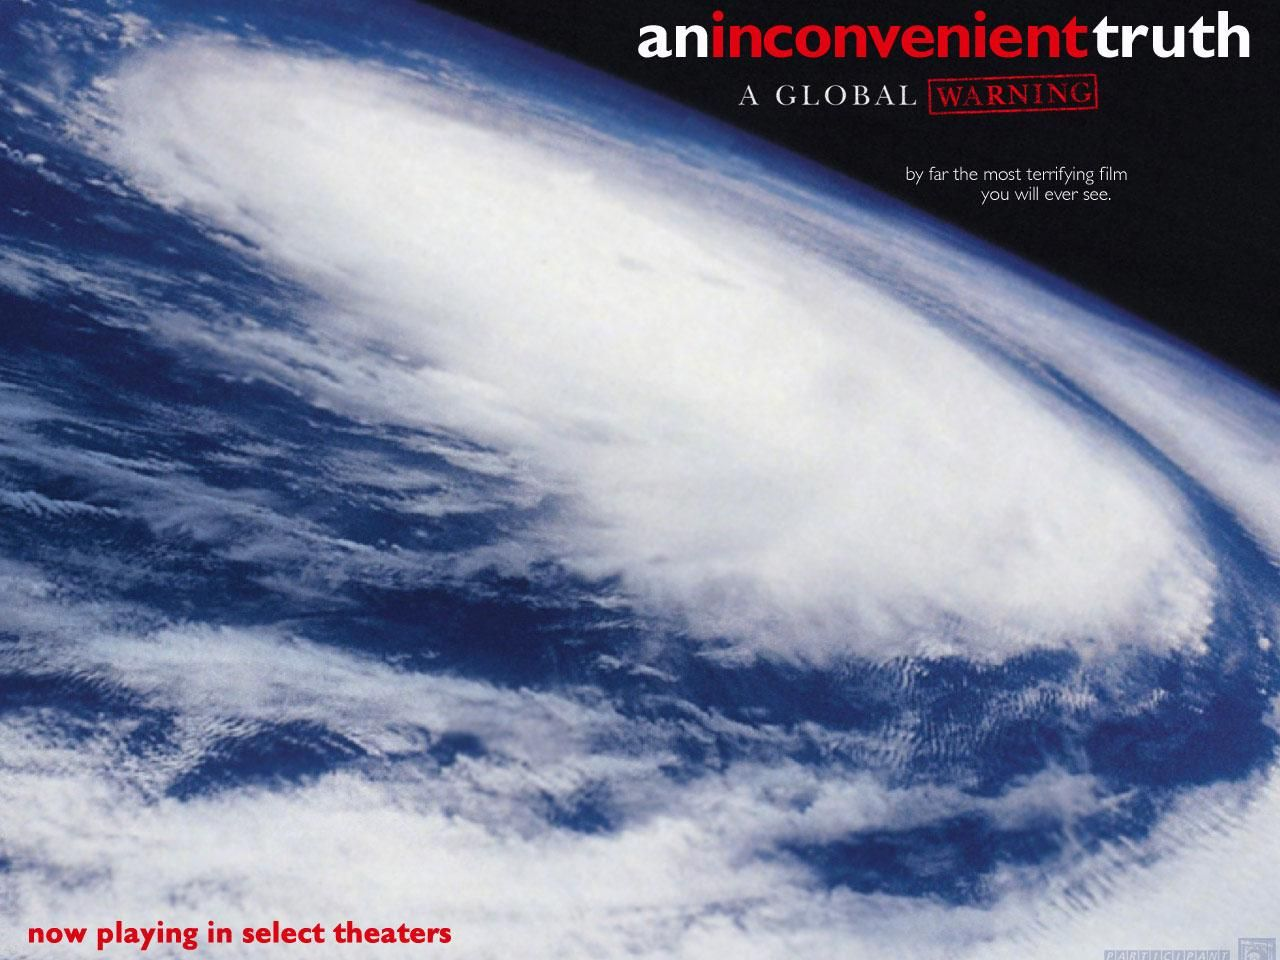 the inconvenient truth review